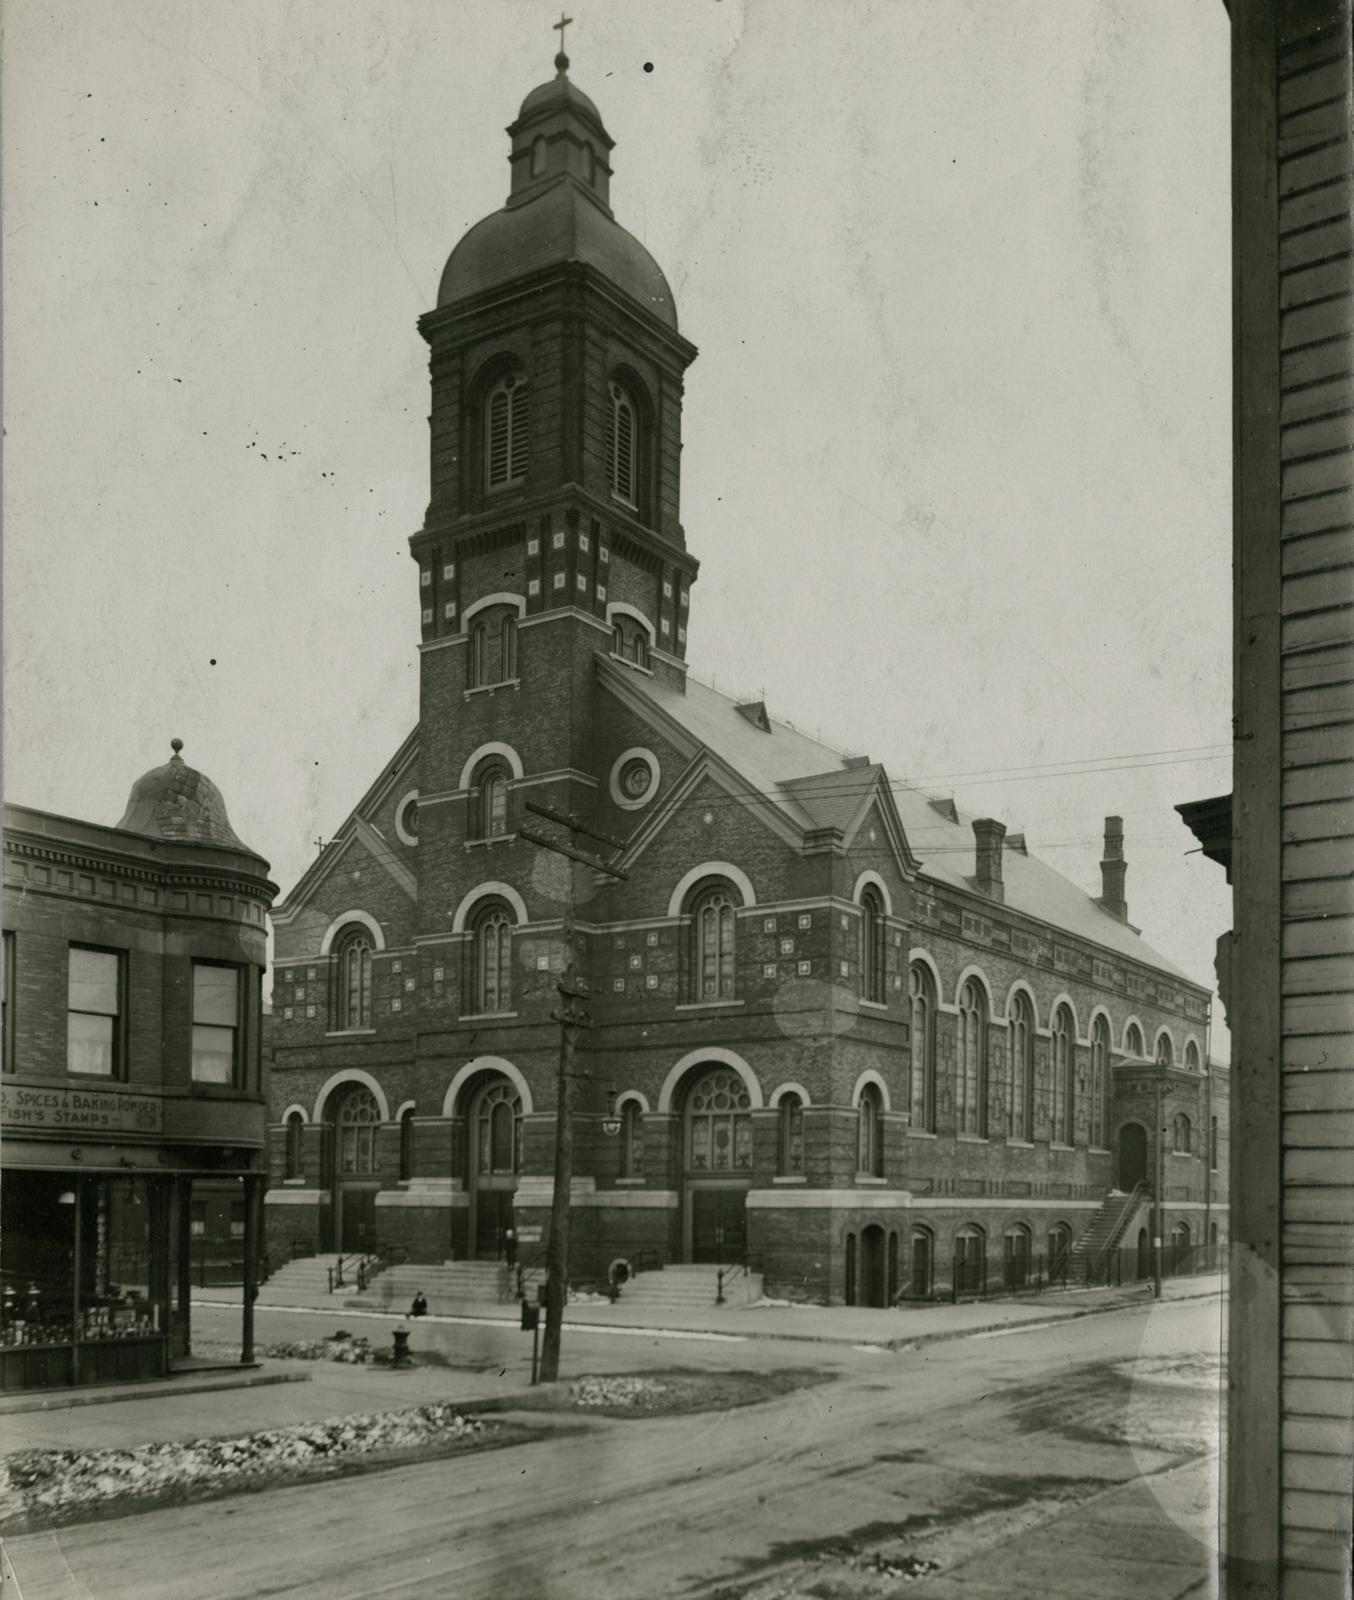 Nativity of Our Lord Catholic Church, Chicago, between 1913 and 1914